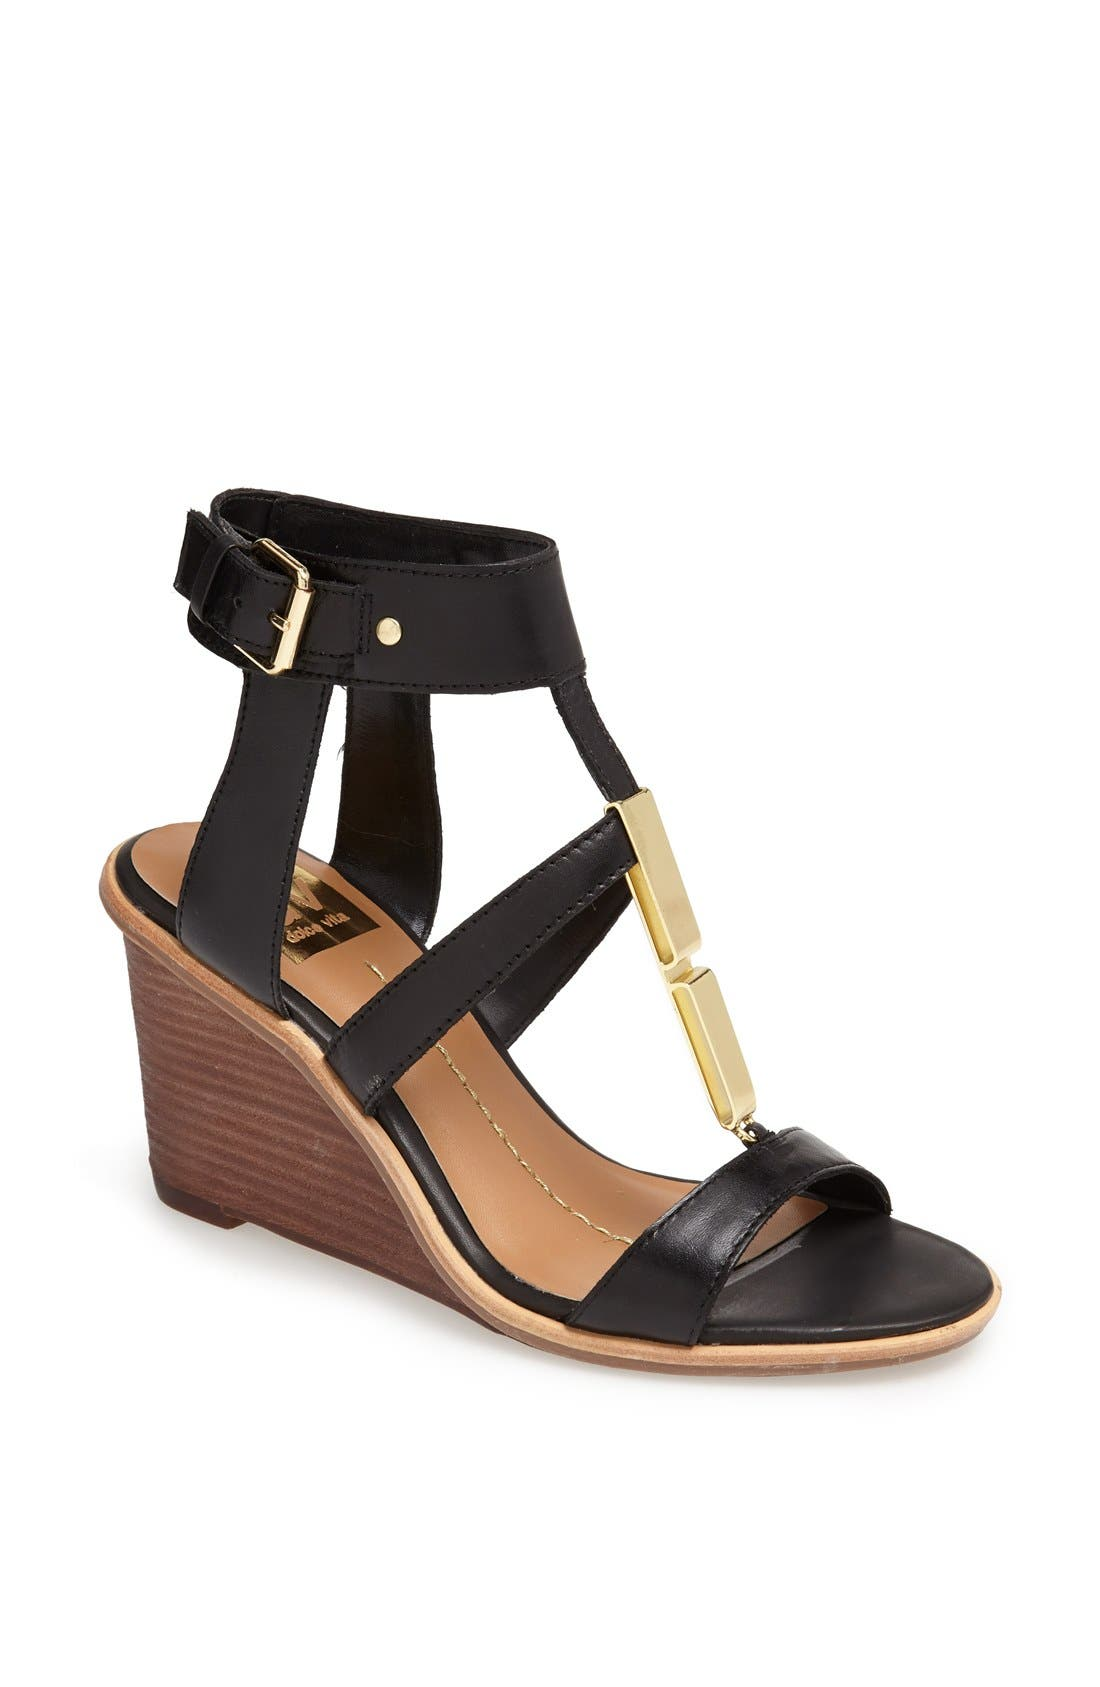 Main Image - DV by Dolce Vita 'Cecily' Wedge Sandal